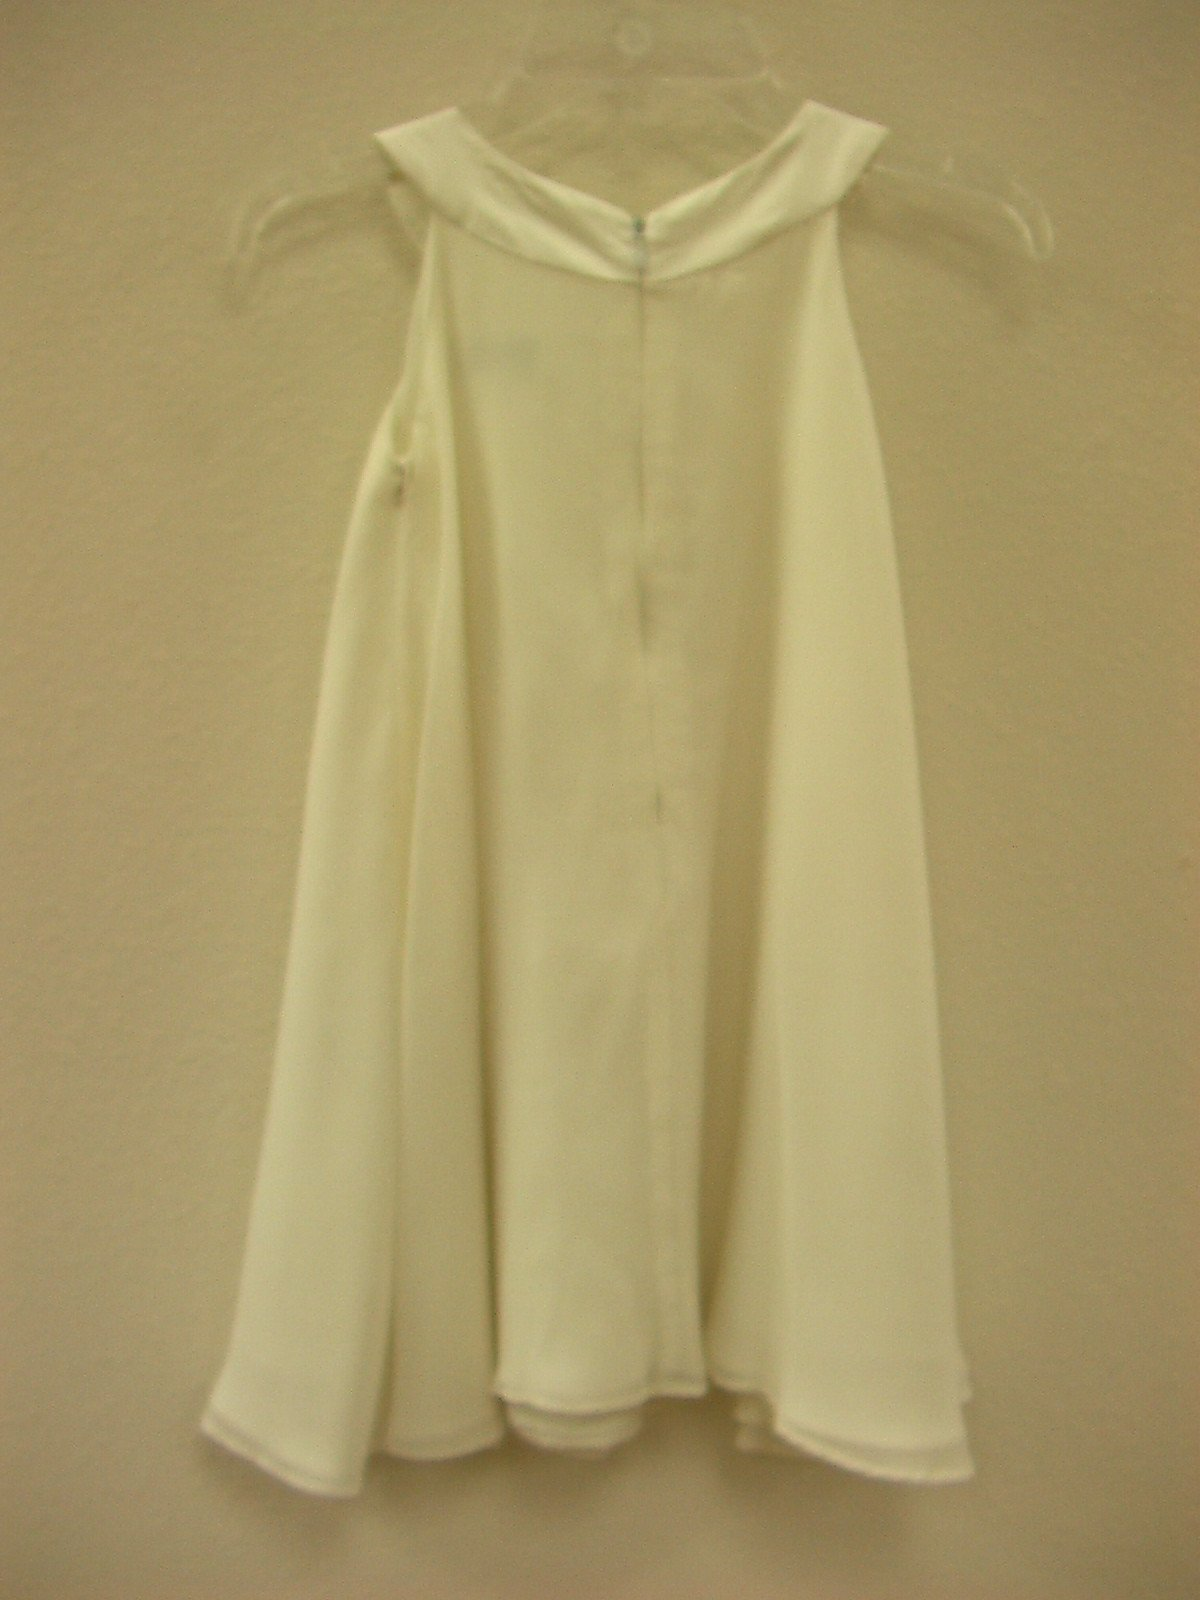 US Angels 10101 Diamond White size 4 In Stock Flower Girl Dress - Tom's Bridal